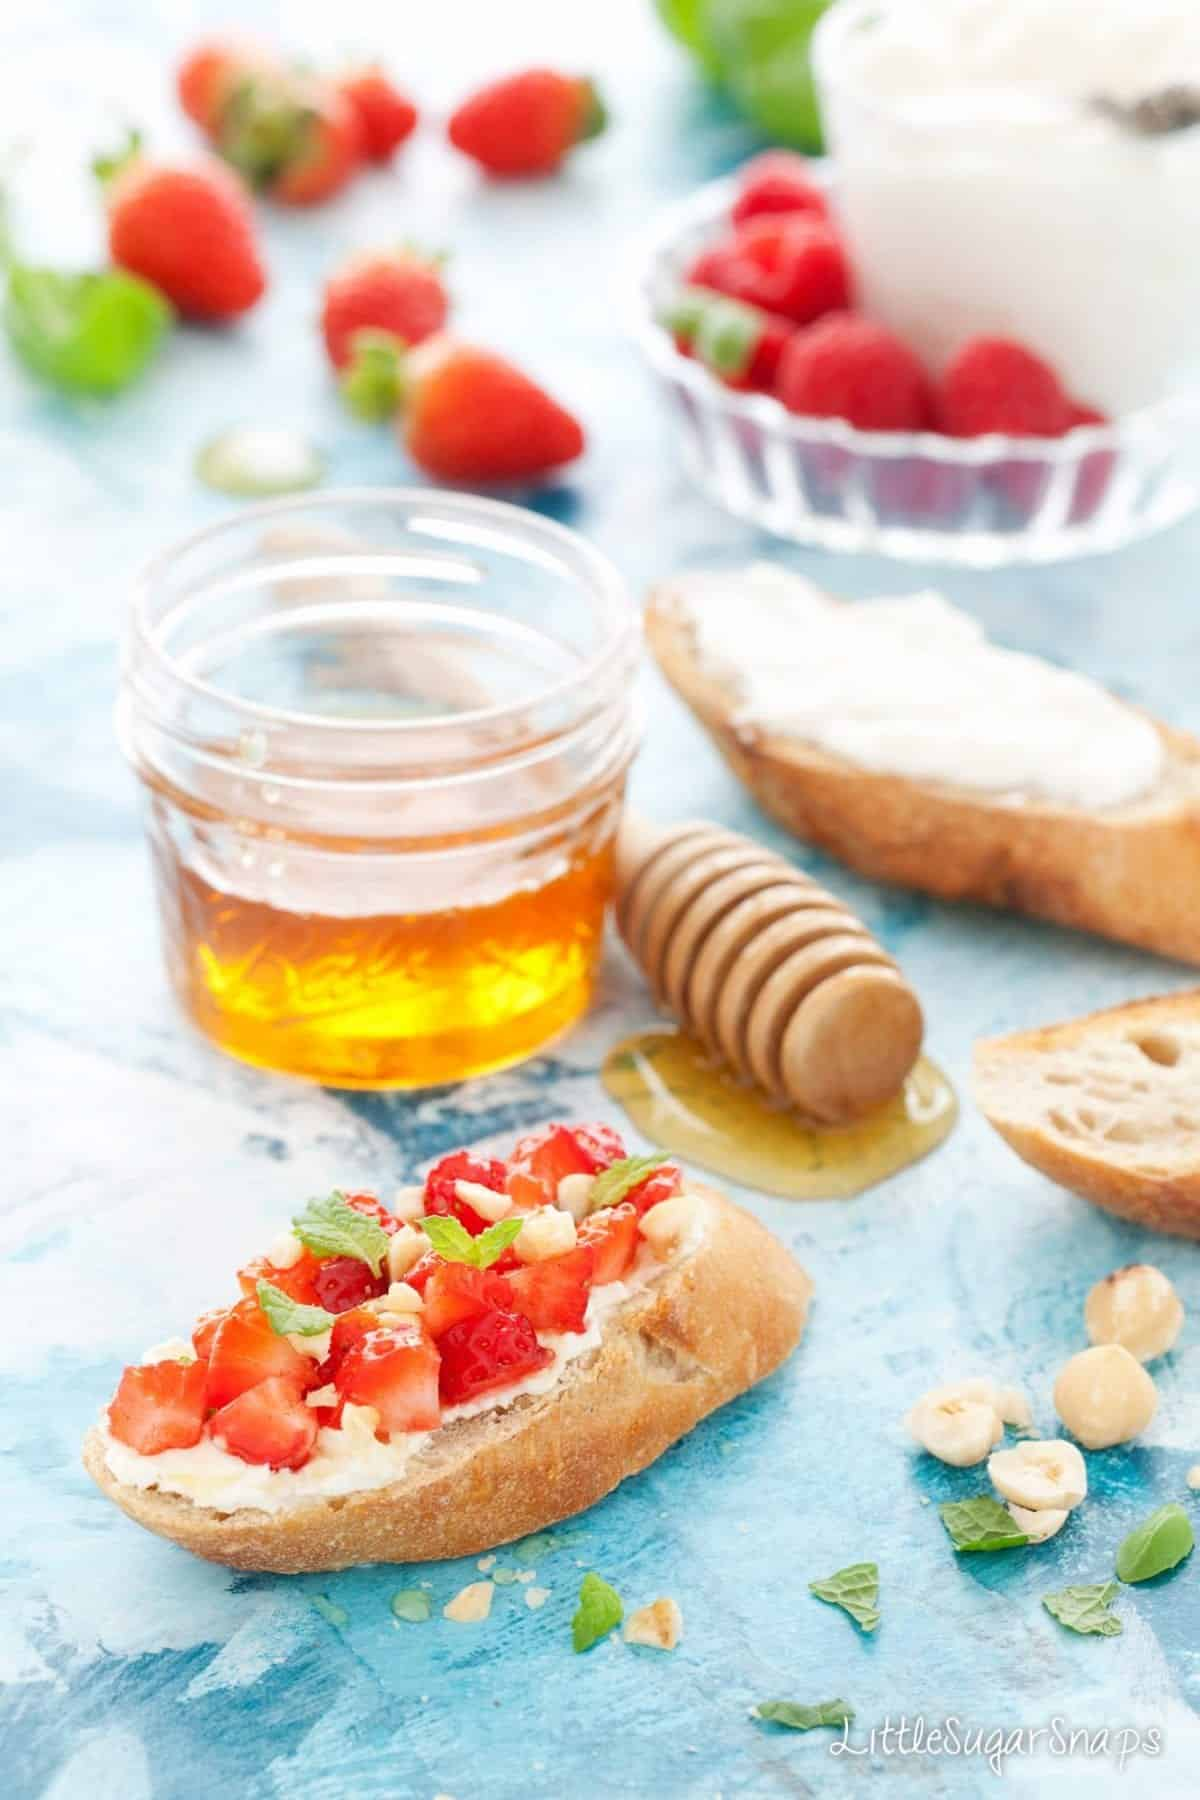 Toasted baguette slice topped with soft cheese, strawberries, hazelnuts and mint